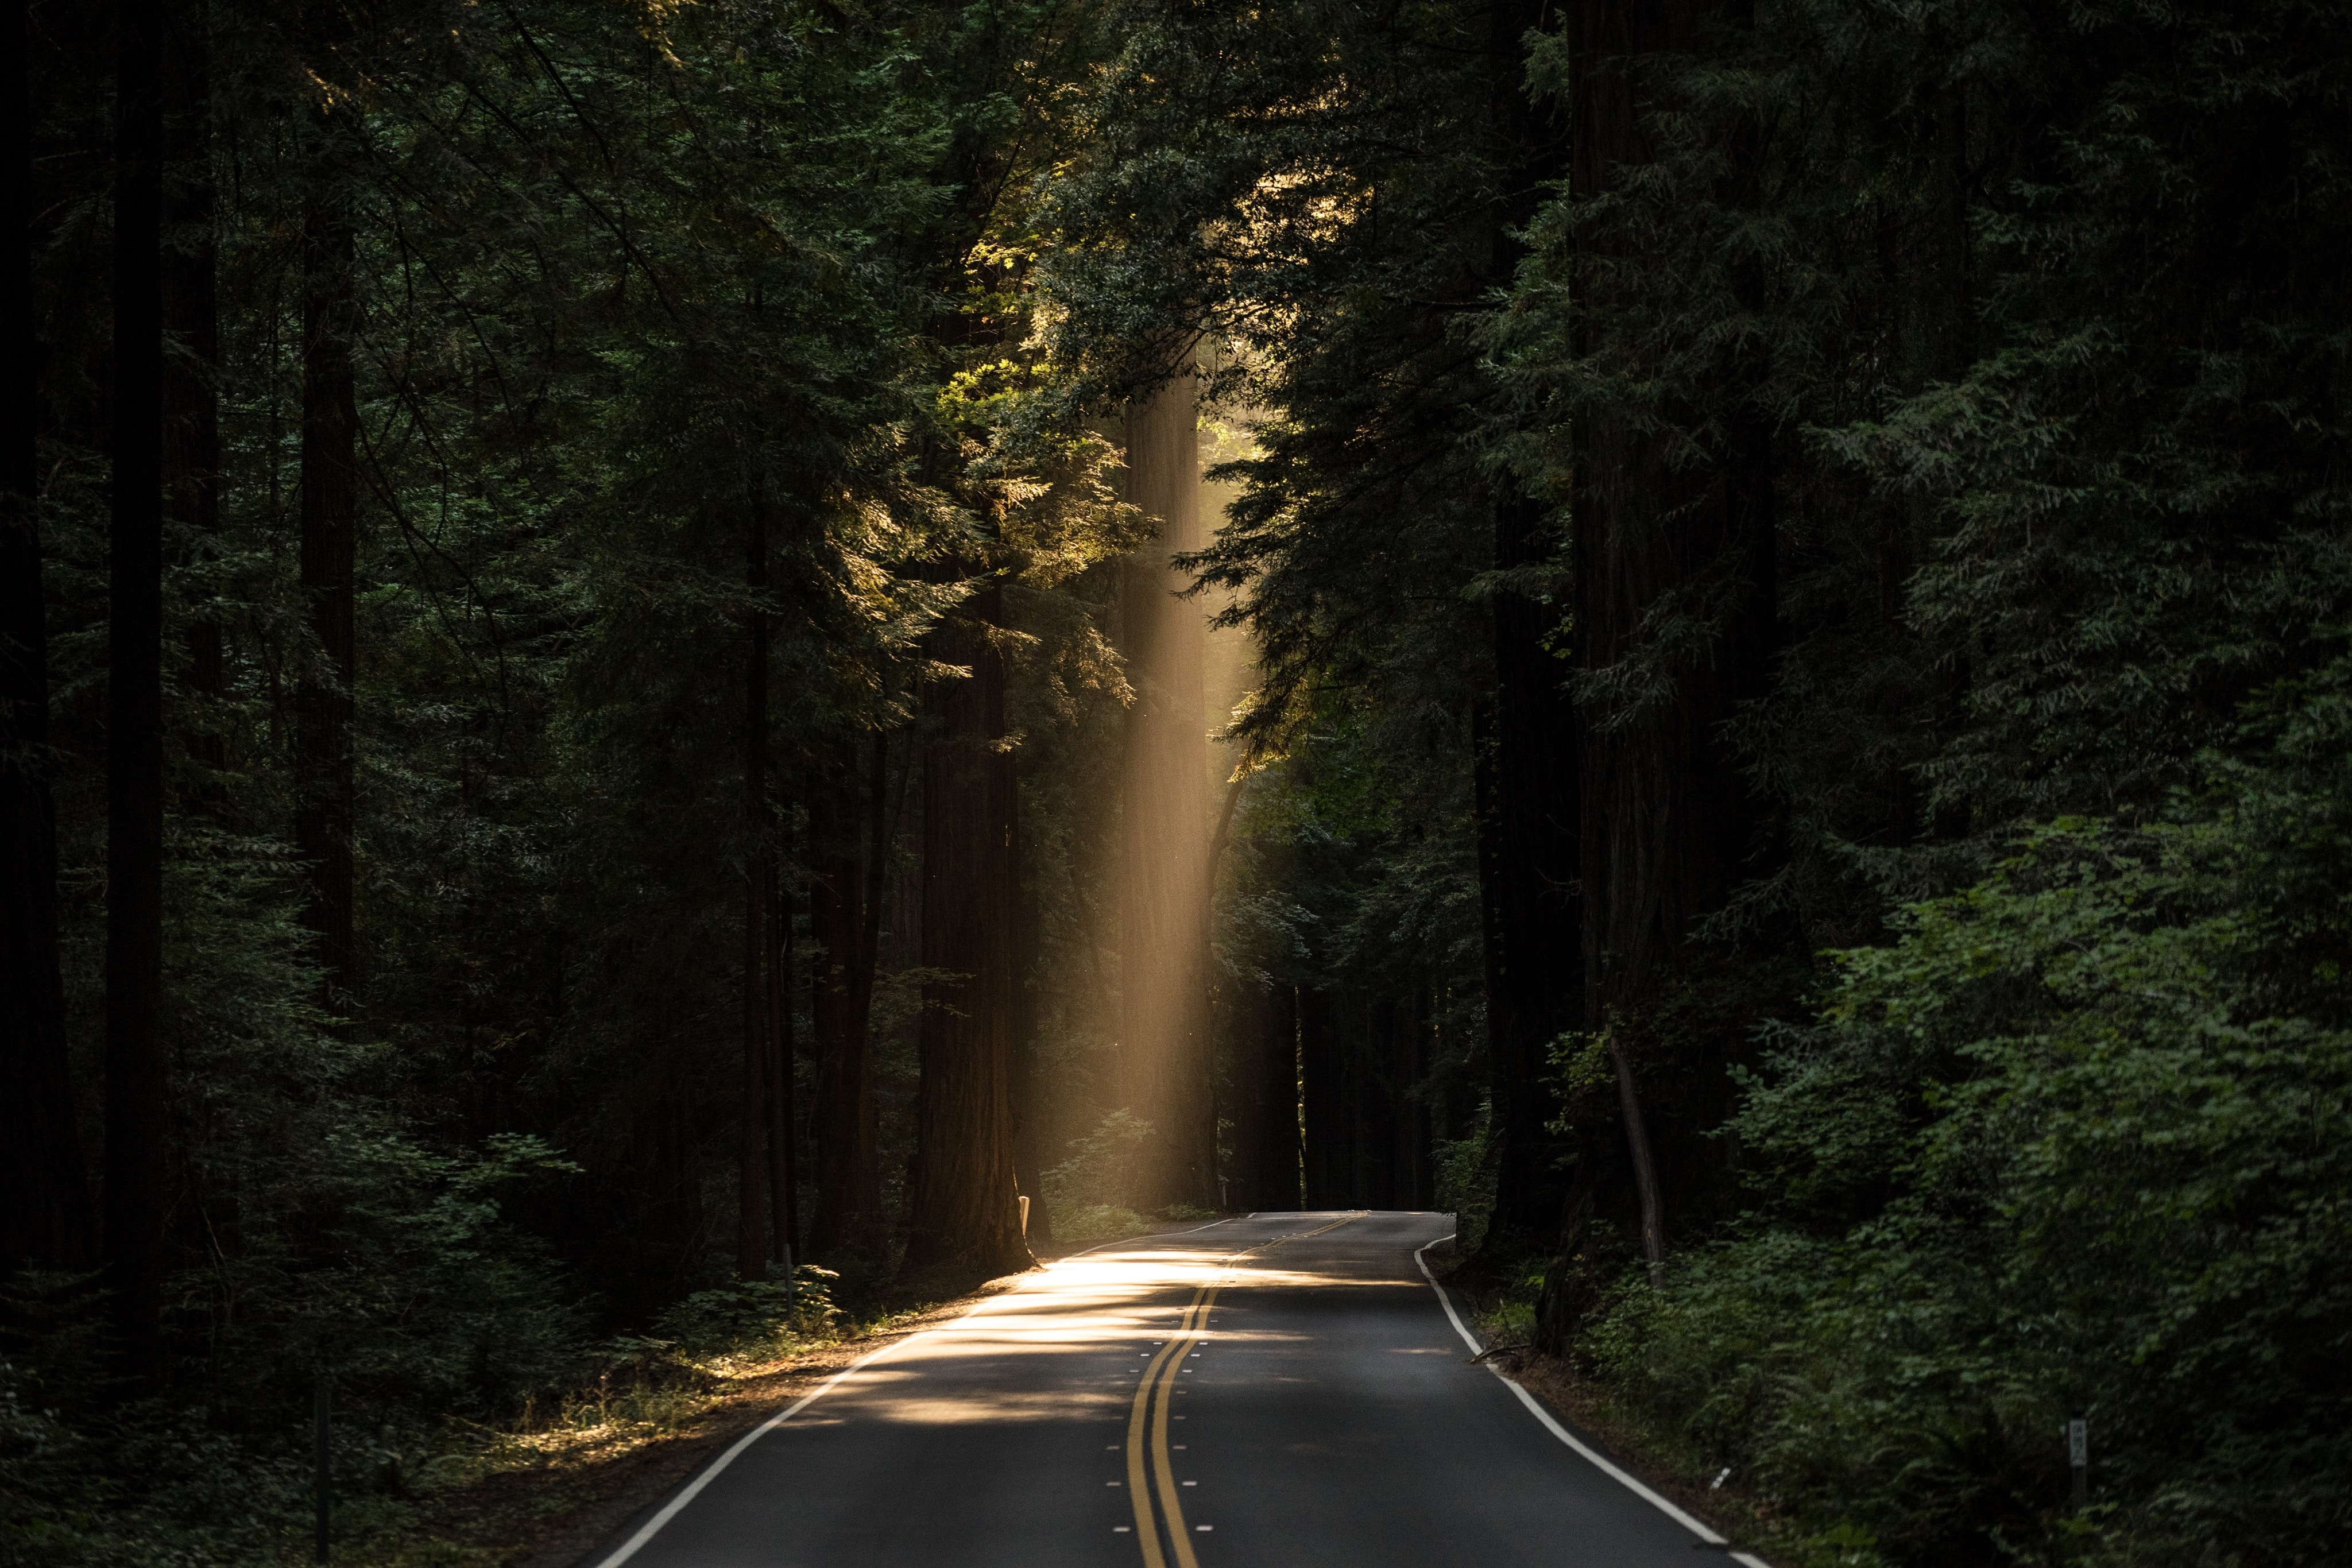 A stream of sunlight pours in through a canopy of trees and illuminates a section of a roadway. God shows up in all the little details of life, He sustains the living and moves the sun, He keeps the road in place and provides the air. We can trust God because He does all this for our good.